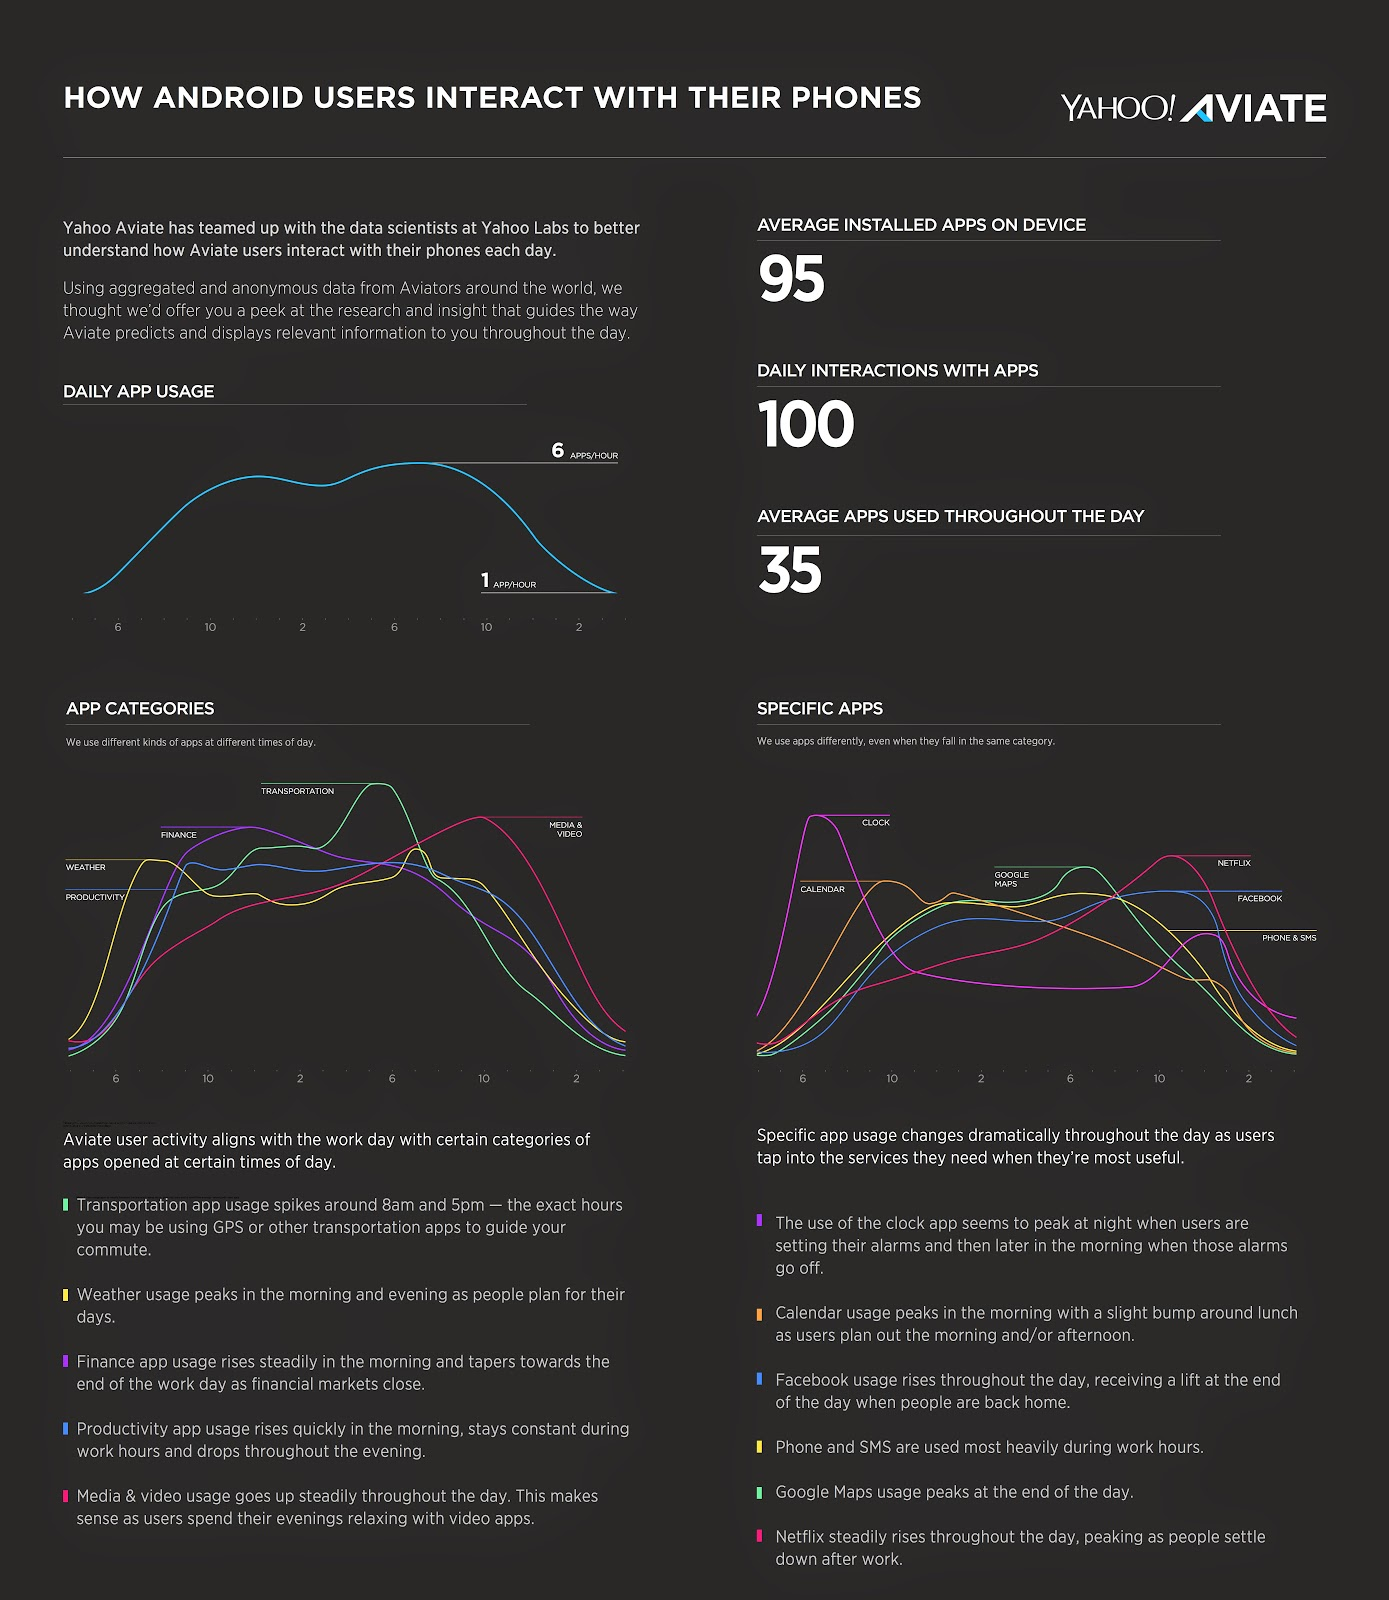 Yahoo Aviate Infographic